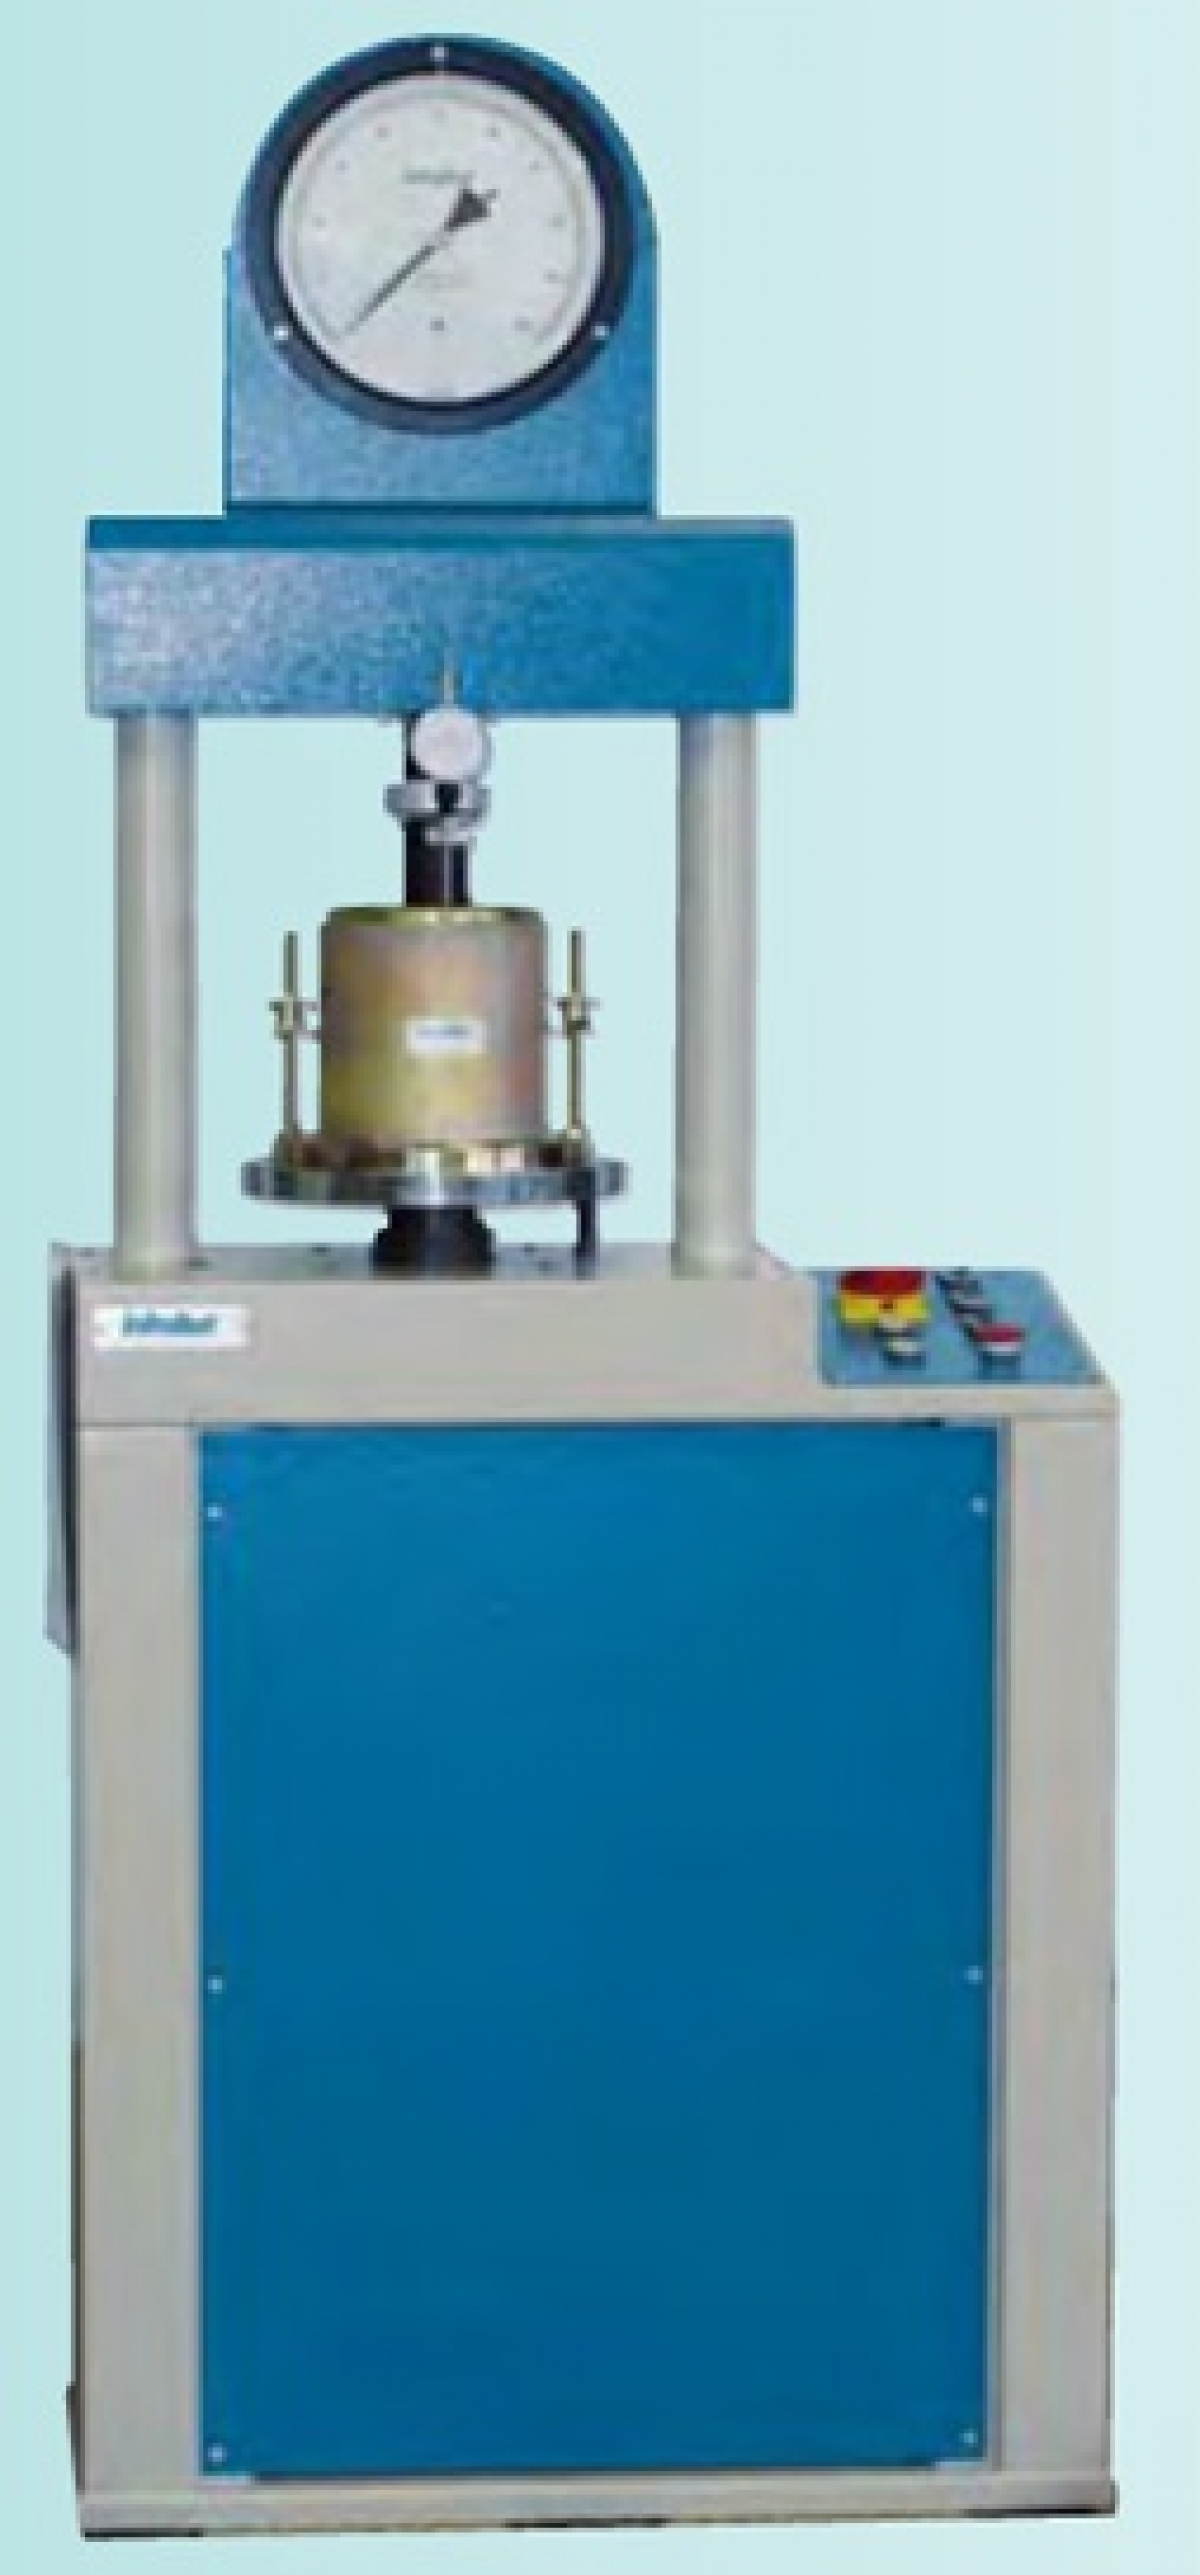 CBR testing machine / Marshal test 50 kN